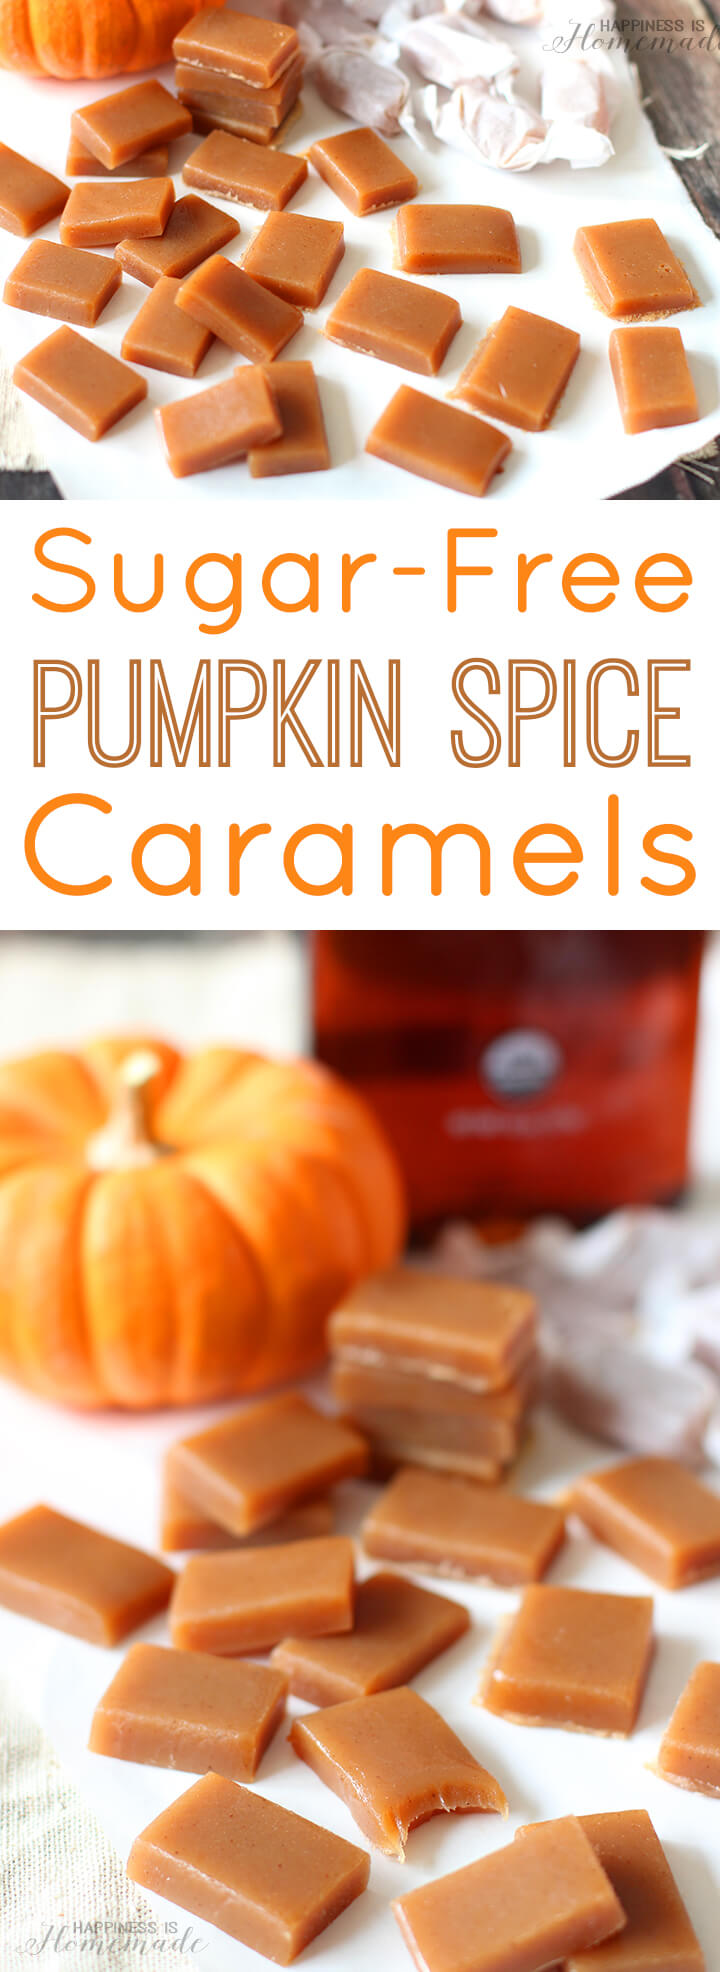 No Sugar Added Pumpkin Spice Caramels Happiness Is Homemade